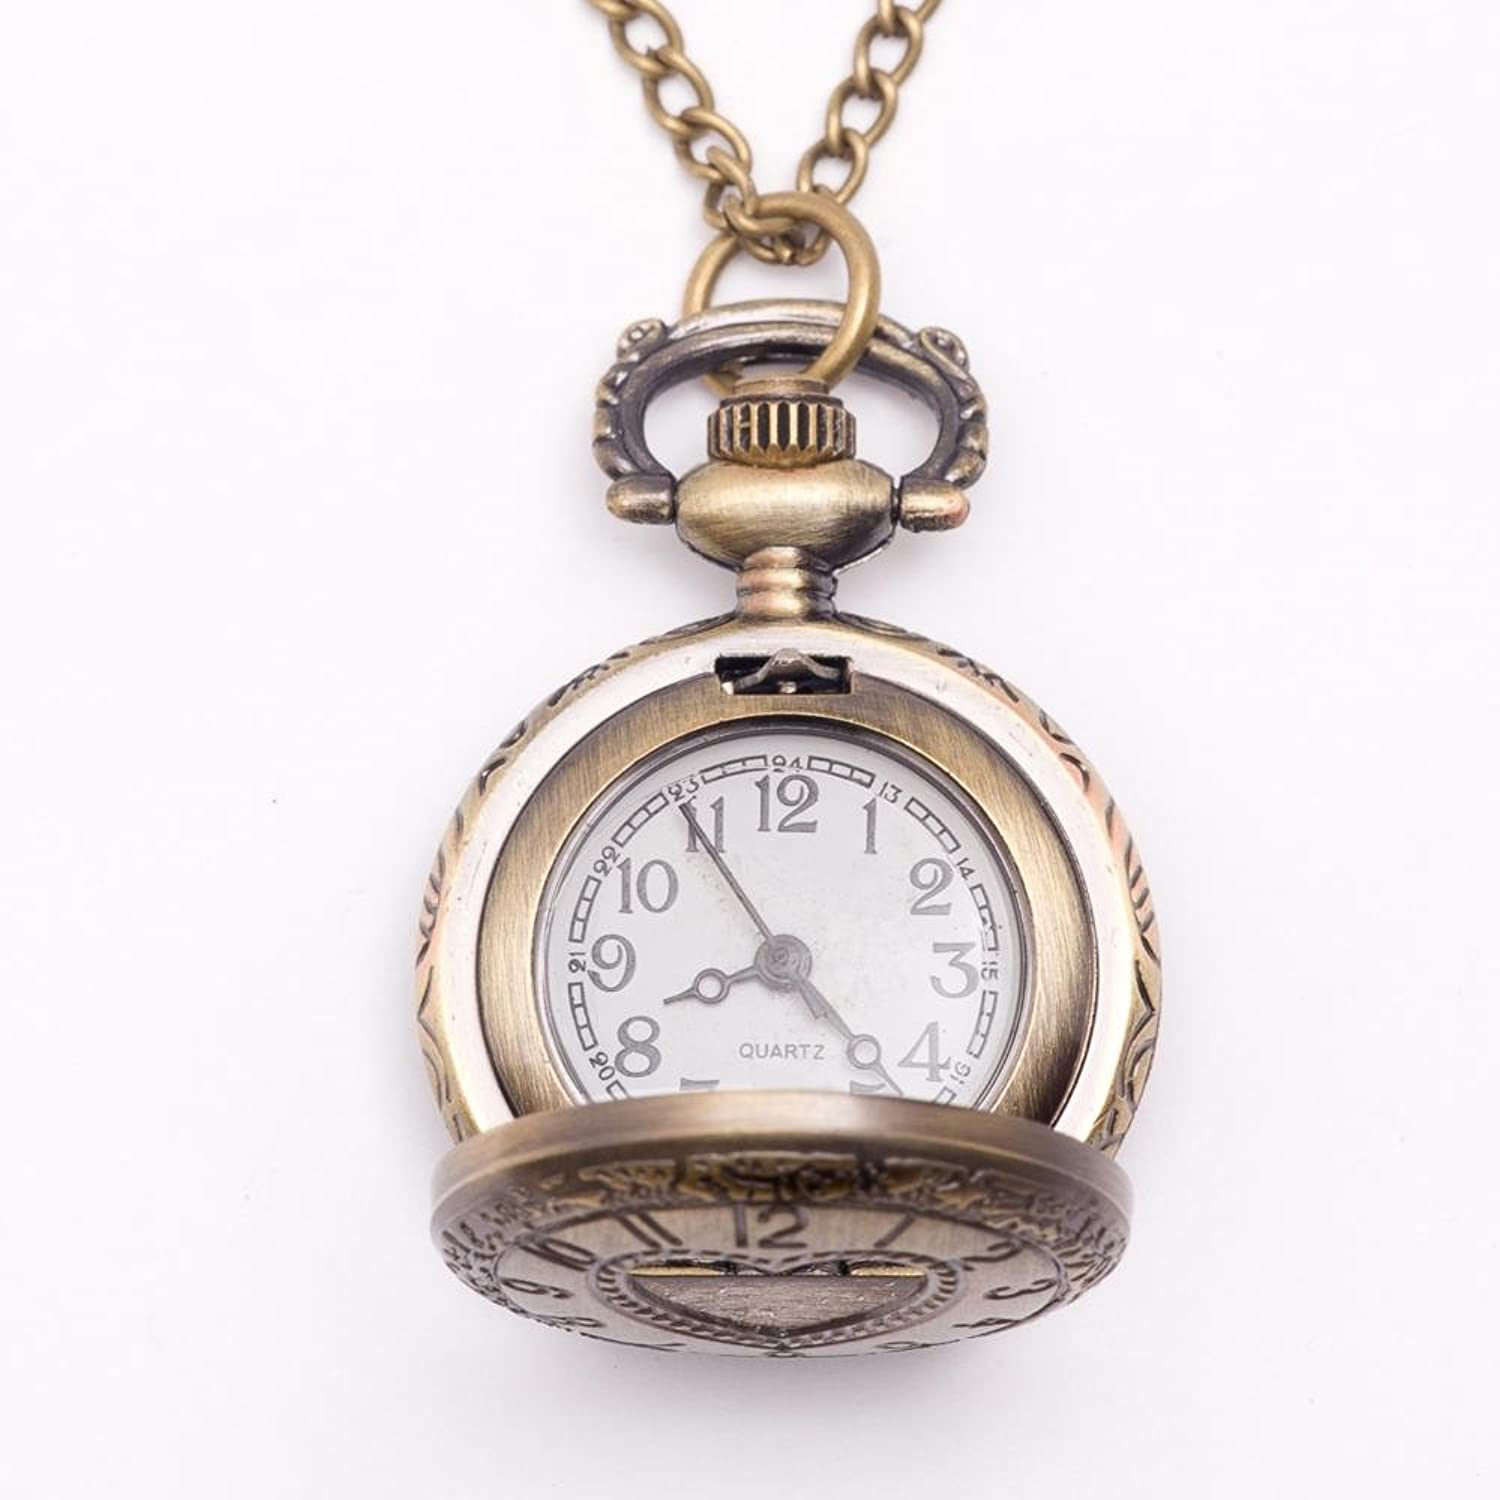 Amazon 81stgeneration womens brass vintage style love heart amazon 81stgeneration womens brass vintage style love heart pocket watch chain pendant necklace 78 cm jewelry aloadofball Image collections